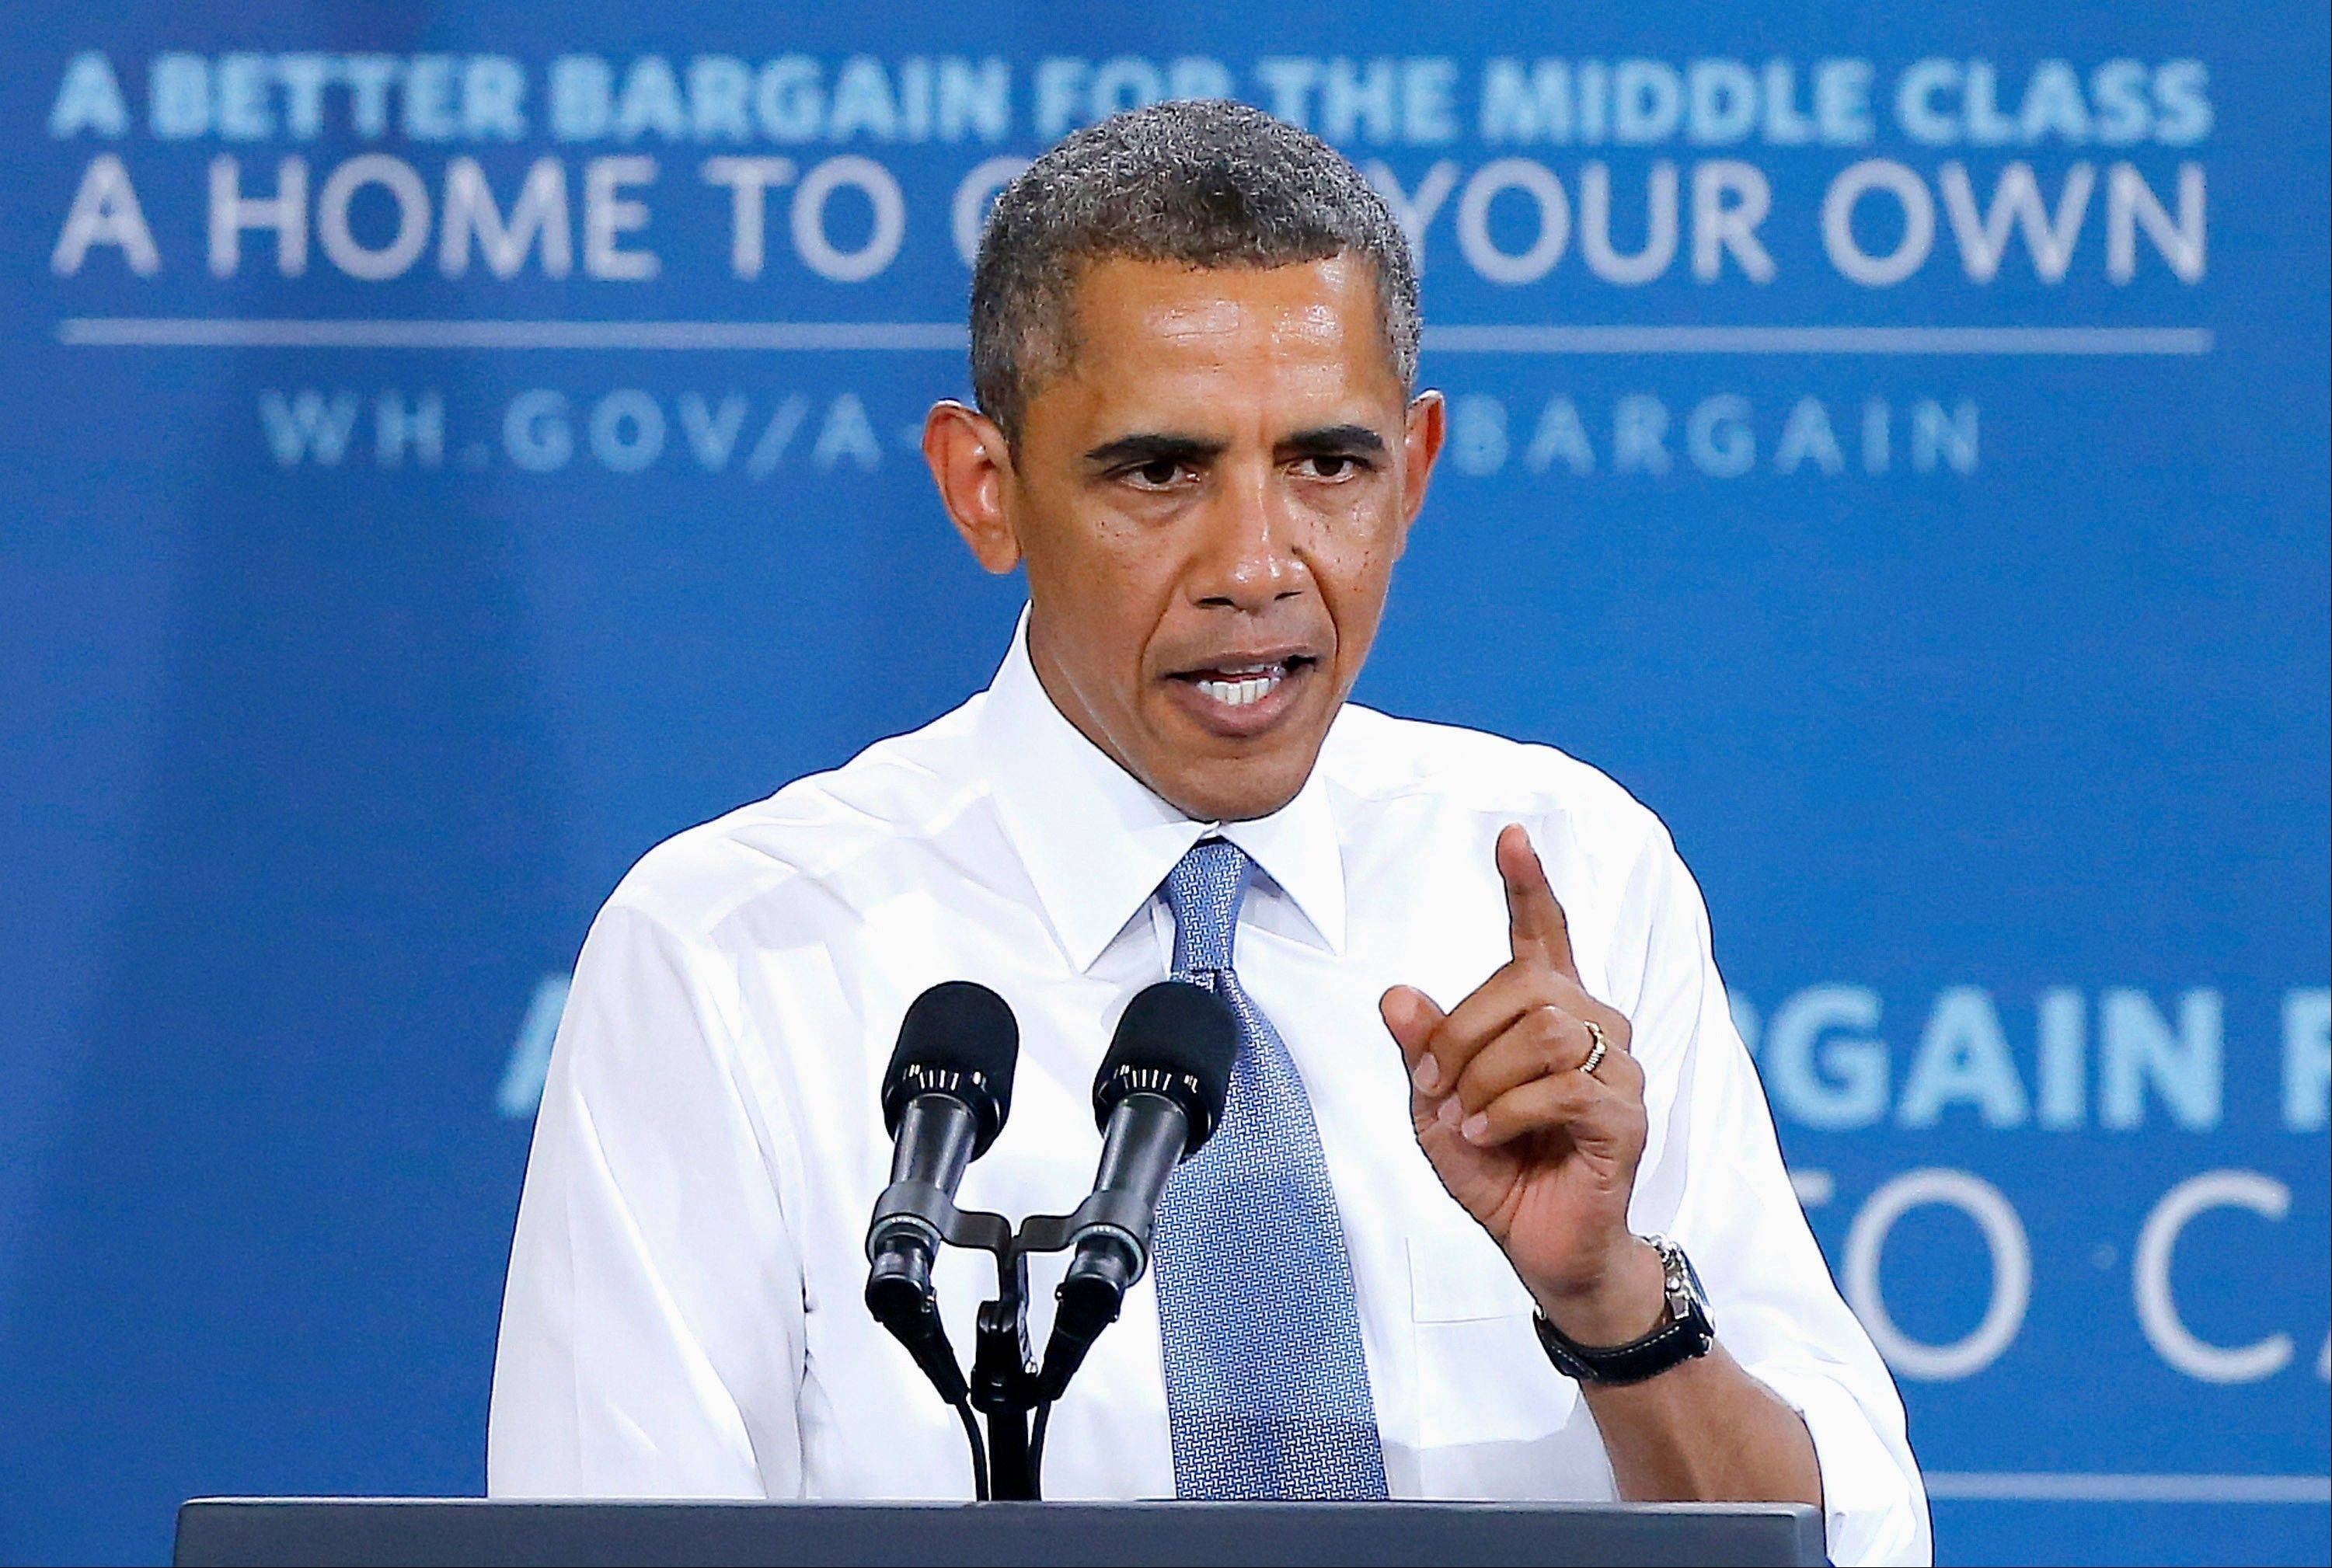 President Barack Obama speaks about housing, Tuesday in Phoenix. Homebuyers could feel the pinch if Congress follows through on proposals to shut down Fannie Mae and Freddie Mac, the government-run mortgage guarantee giants that were rescued by a $187 billion taxpayer bailout during the financial crisis.